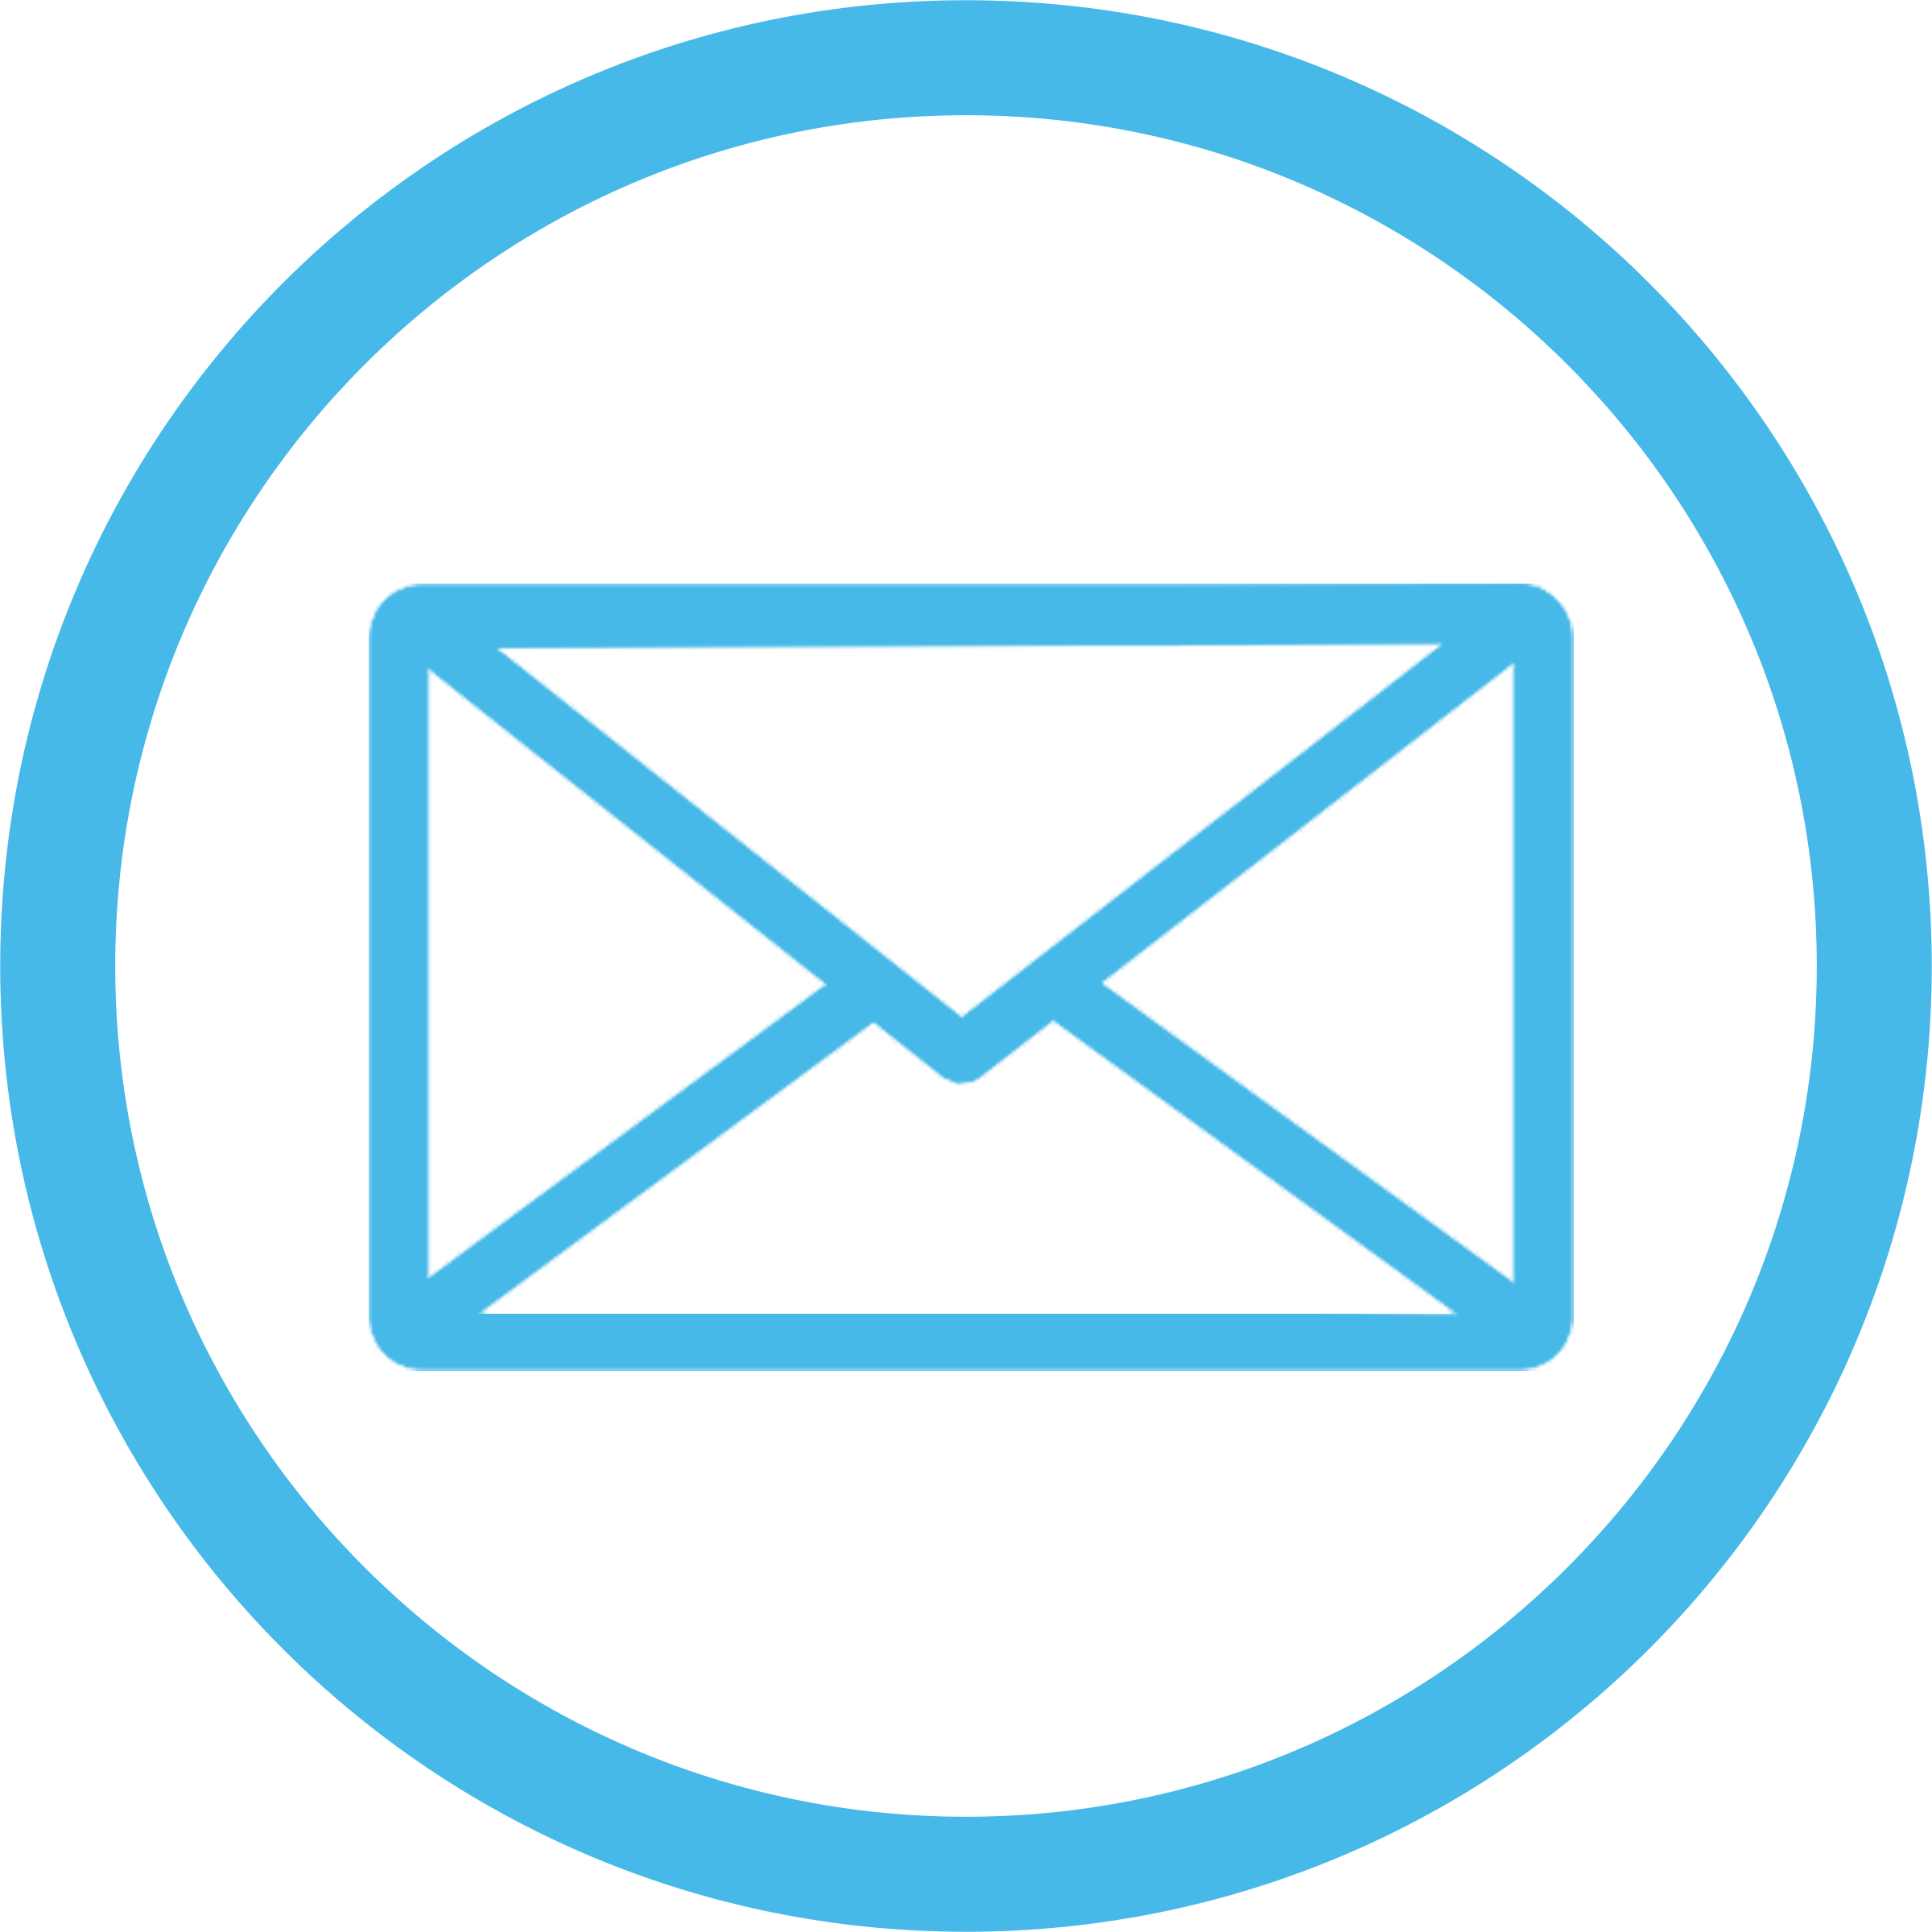 Transparent Email Icon | Free download on ClipArtMag